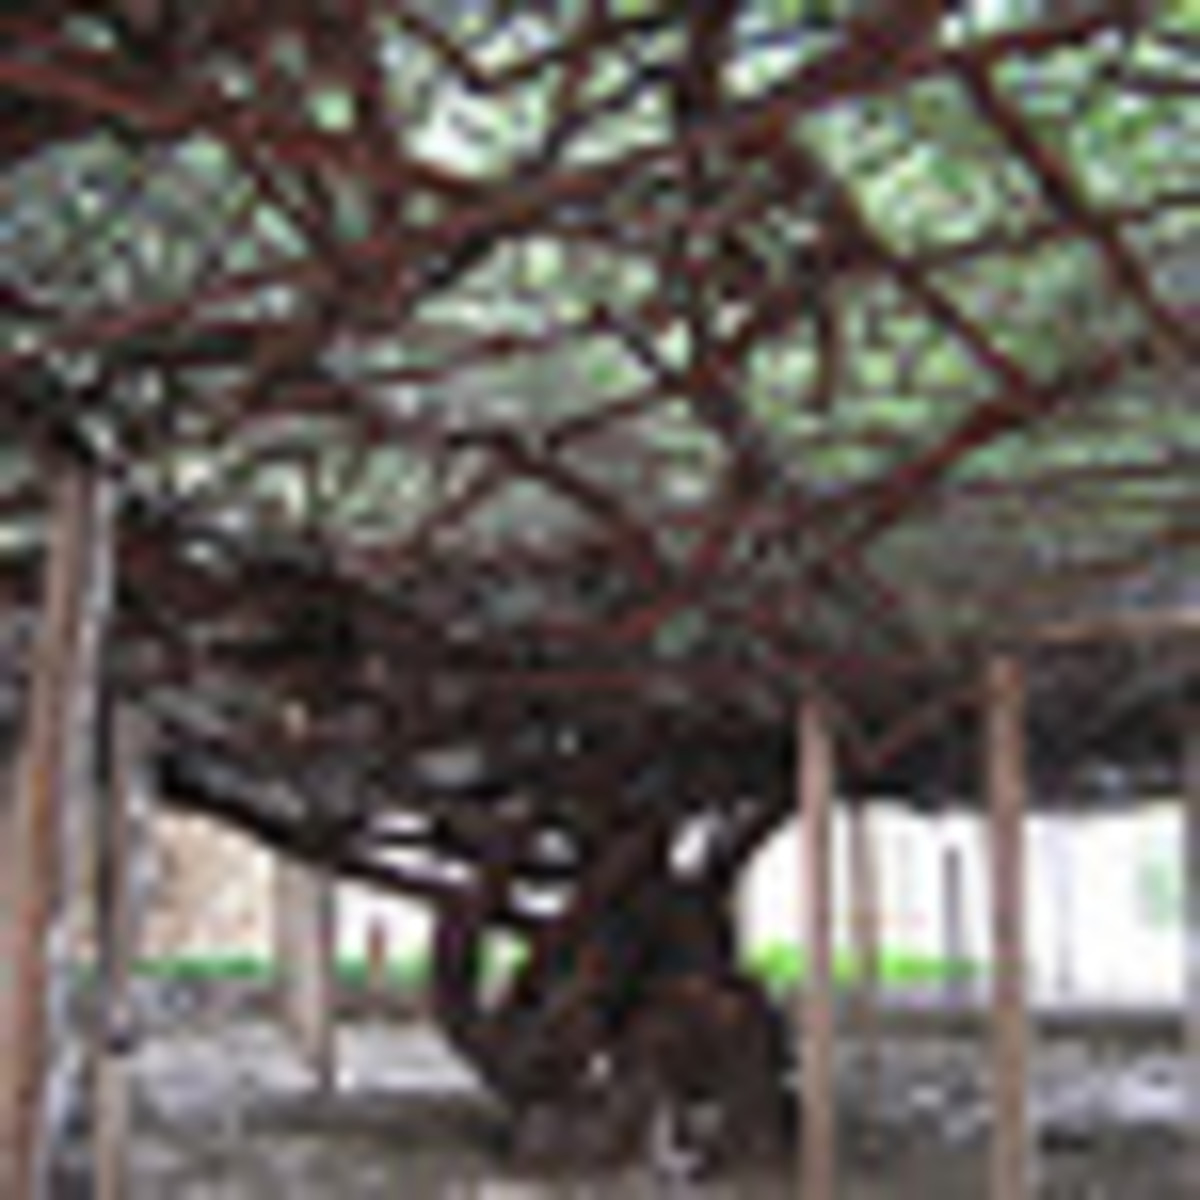 World's largest rose bush This is the trunk and a part of the under canopy. The bush is over 120 years old and covers 8,000 square feet.